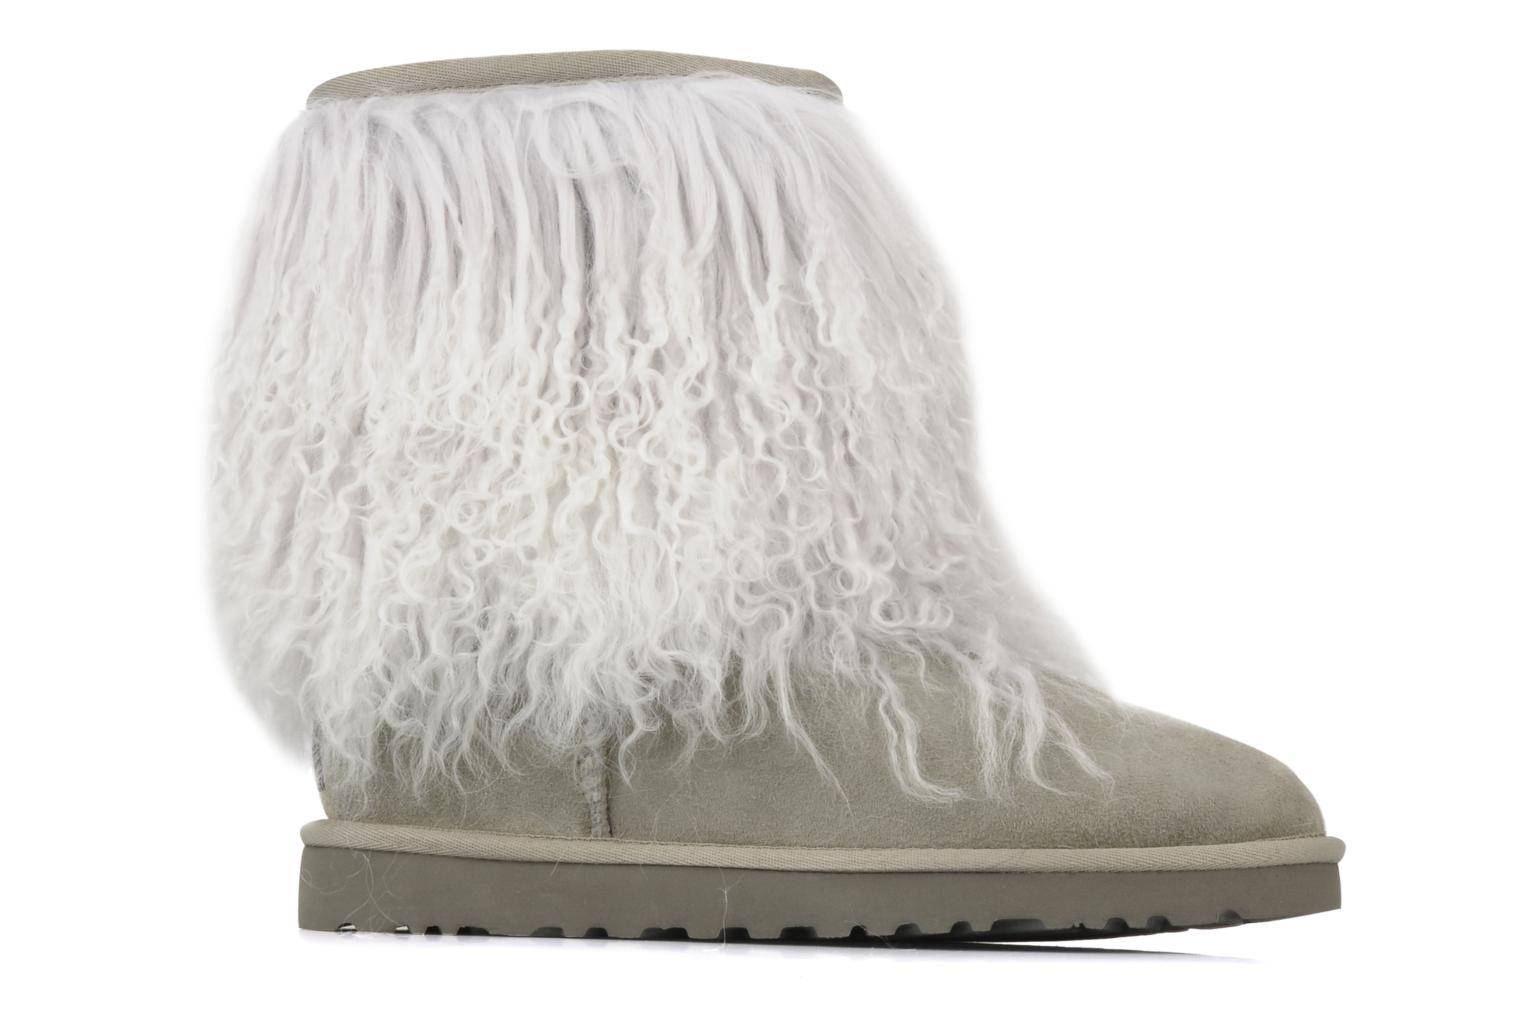 389d4f57fd4 Ugg With Sheepskin Cuff Boot - cheap watches mgc-gas.com